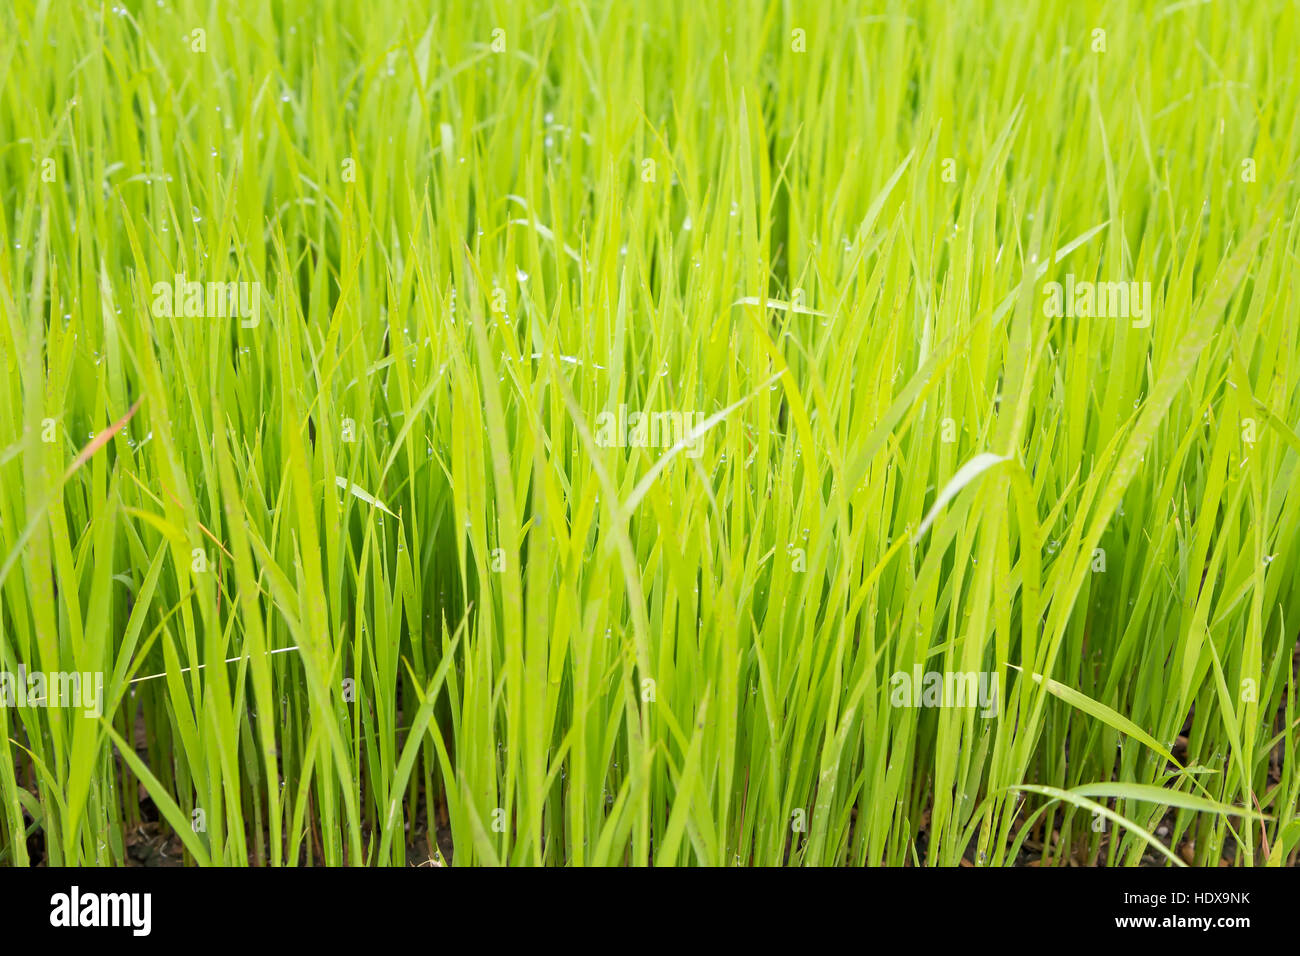 Rice seedling in the rice fields - Stock Image